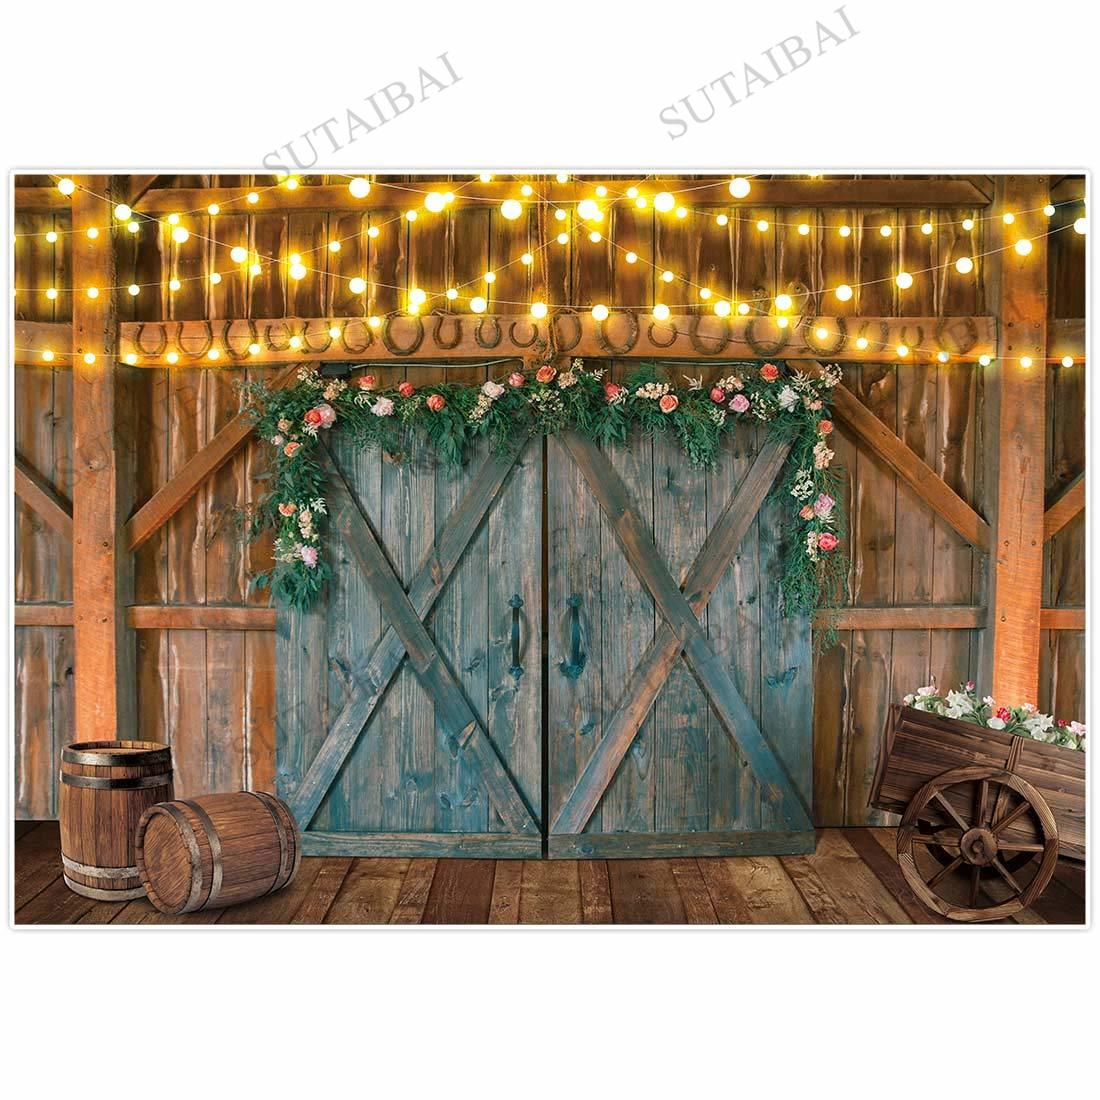 Spring Easter Backdrop Wooden Wall Blue Retro Door Flowers Light Bulb Baby Shower Party Photography Background Photo Studio enlarge